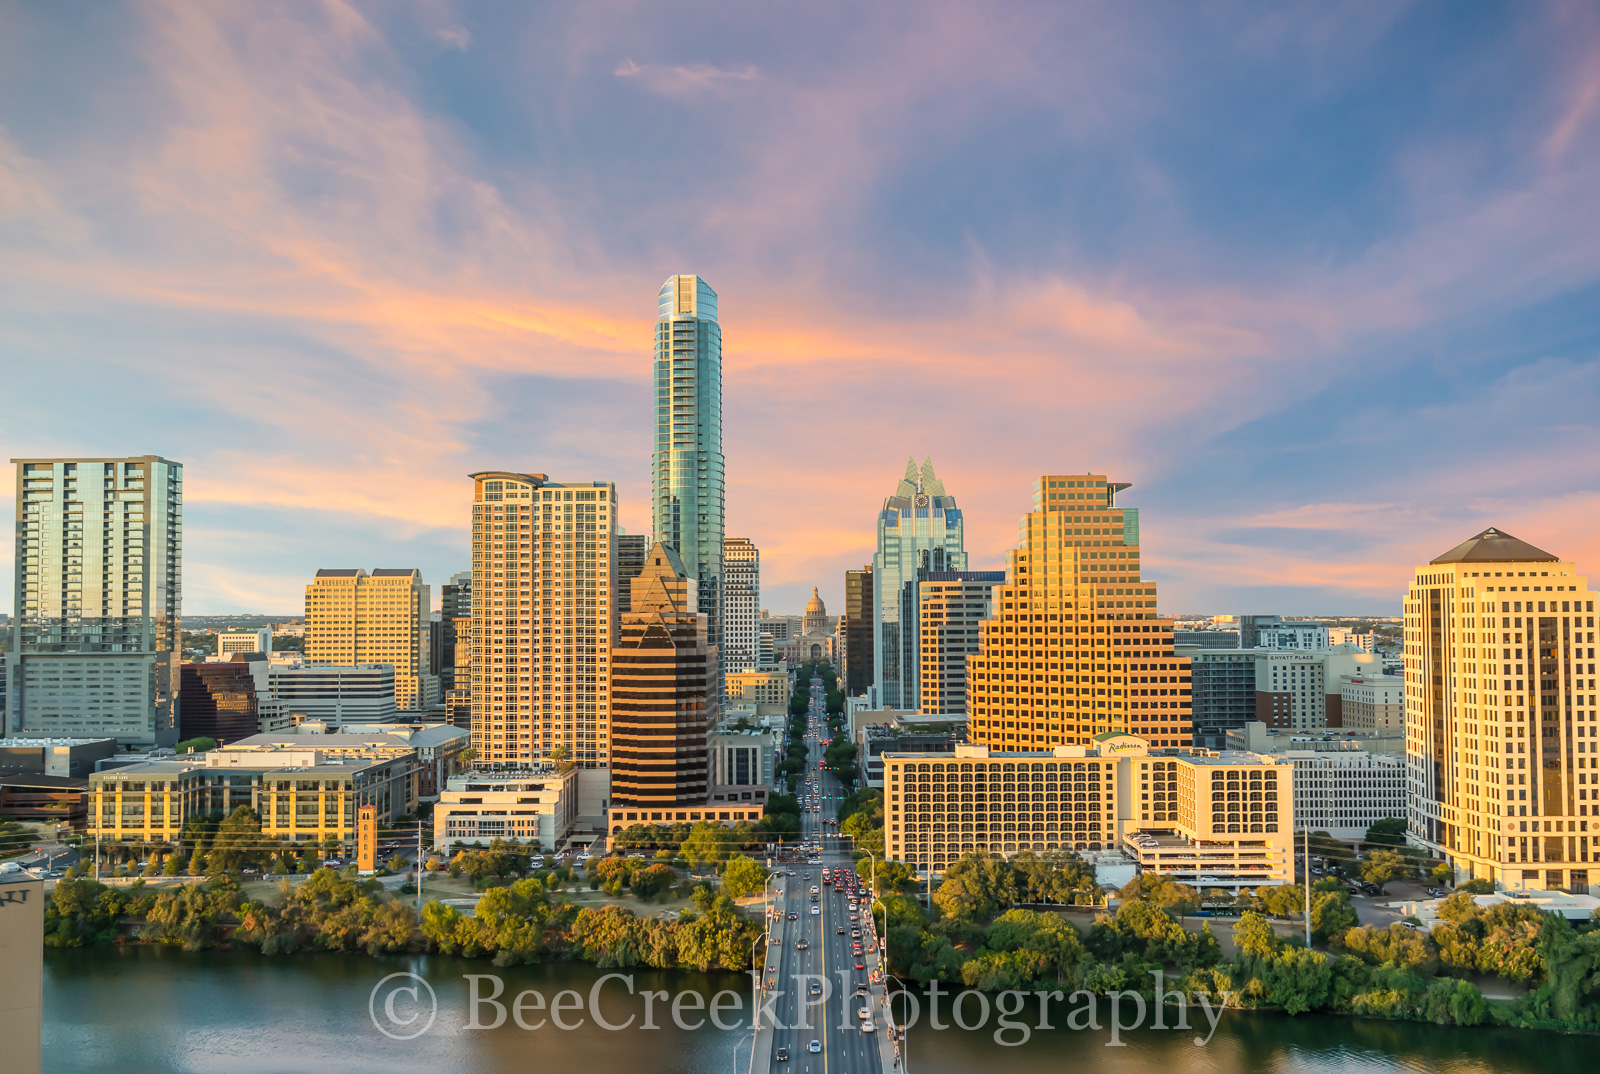 Austin, Congress, Texas, over austin, congress bridge, Lady bird lake, sunset, dusk, high rise, glow, downtown, urban, skyline, cityscape, capital, capitol, aerial, drone, phototgraphy, bee creek phot, photo